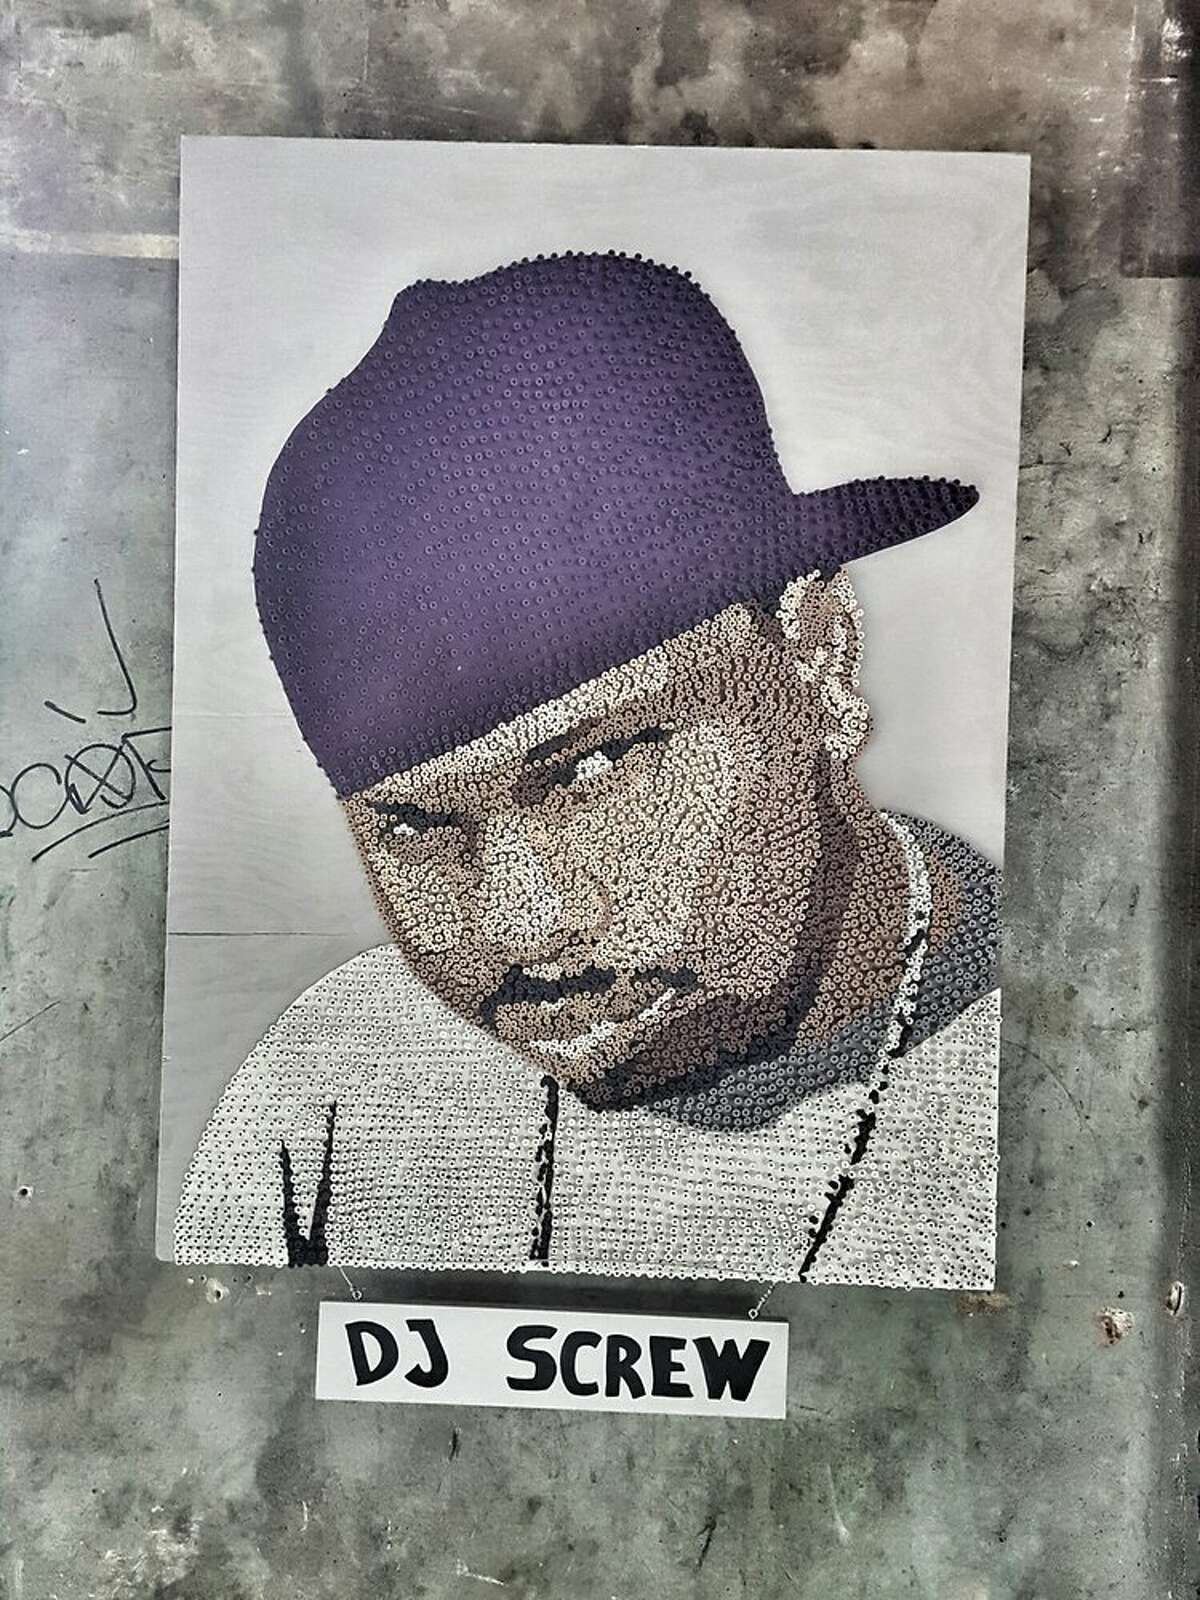 Screwed up Sunday was started when one of Screw's family members contacted an artist and friend of Soroka after she found a piece he did honoring the late rapper. The artist, who goes by Donkeeboy, made the piece completely out of screws during an event at the brewery more than five years ago. Photo by: Jeff S/Yelp